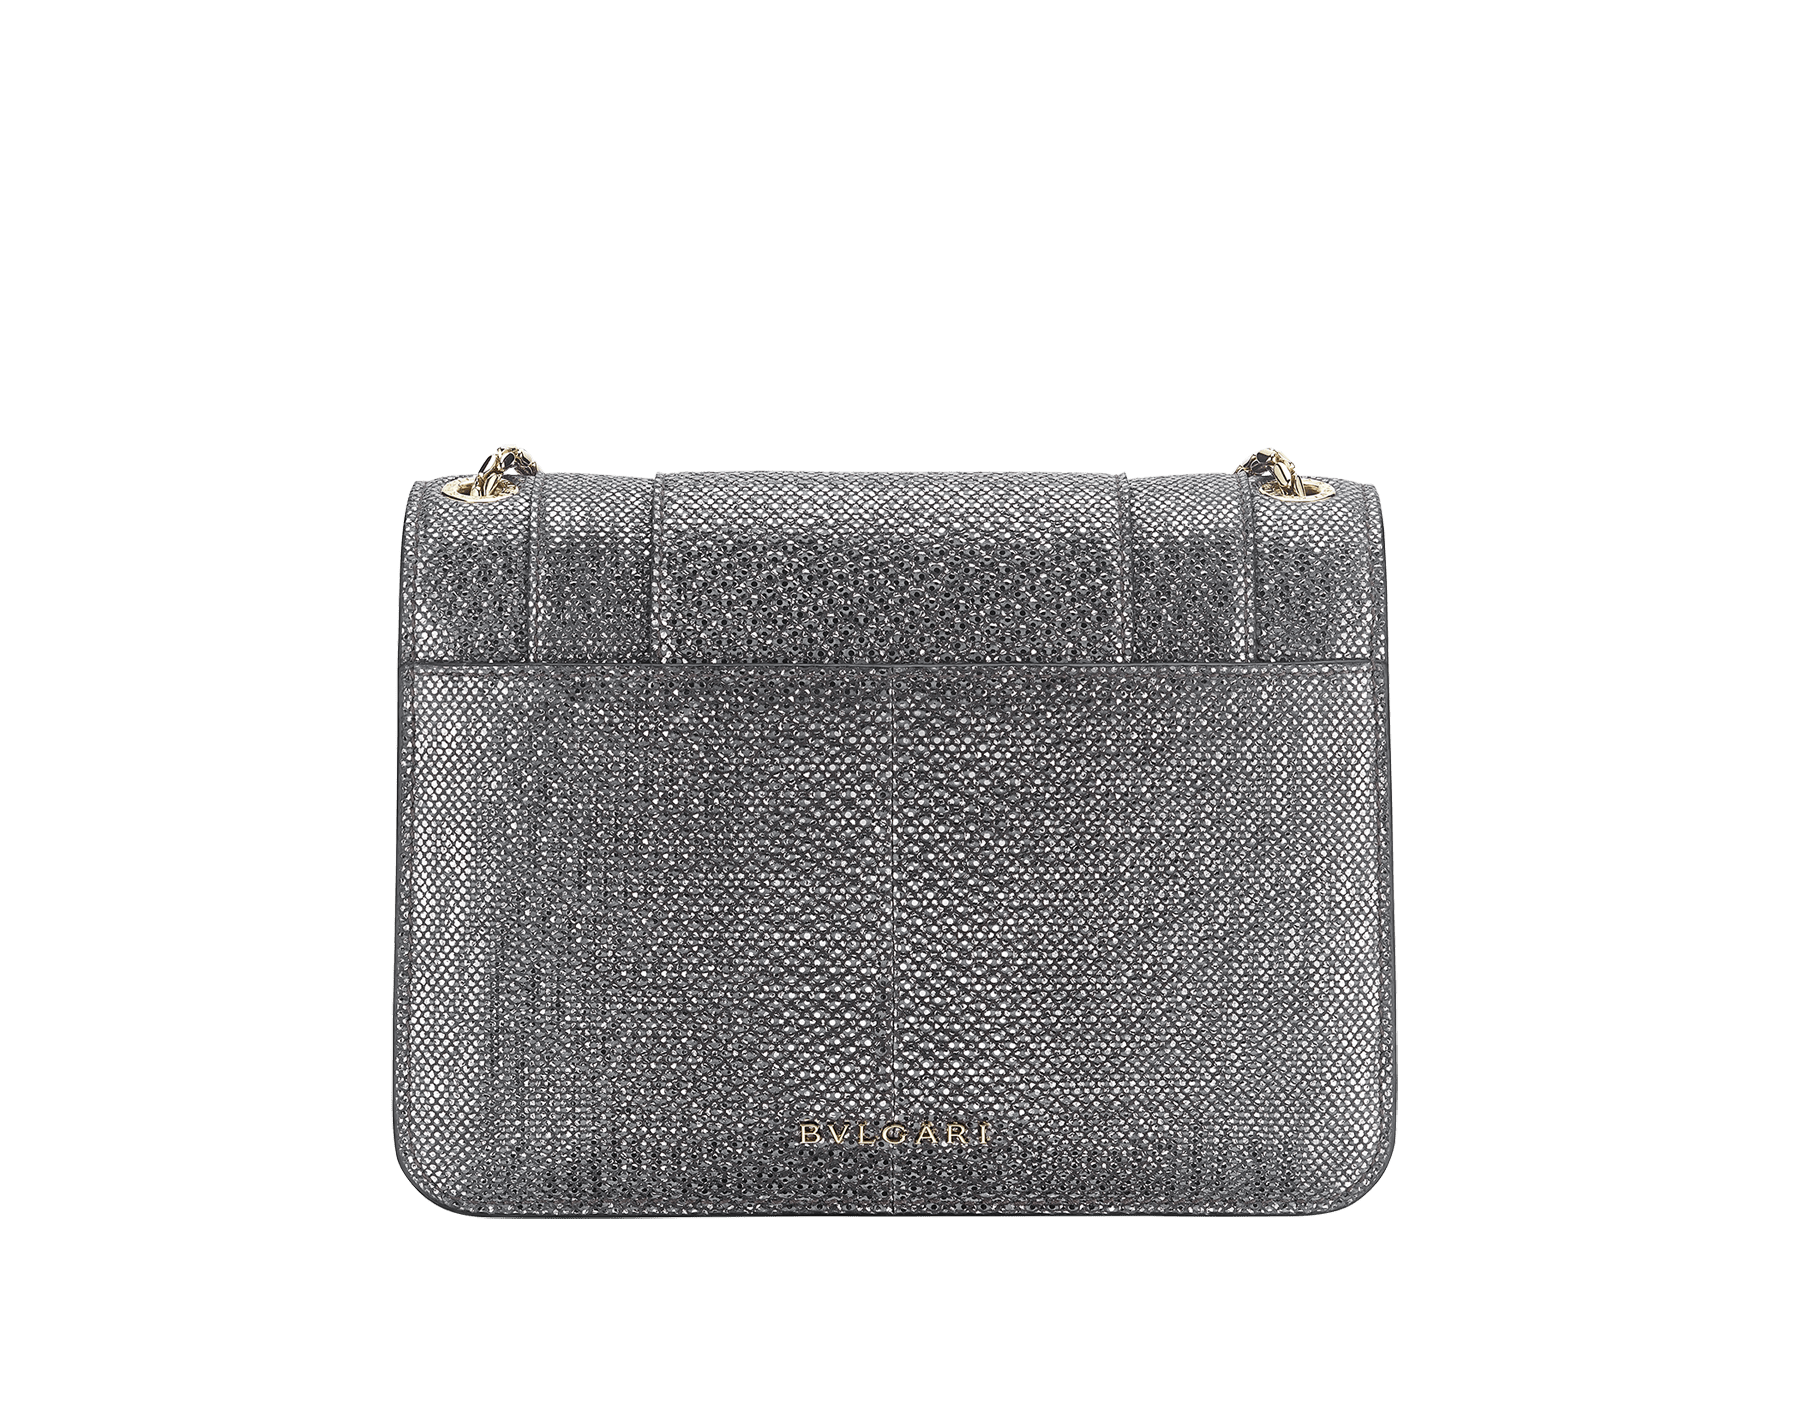 """Serpenti Forever"" crossbody bag in charcoal diamond metallic karung skin. Iconic snakehead closure in light gold plated brass enriched with black and glitter hawk's eye enamel and black onyx eyes. 289900 image 3"